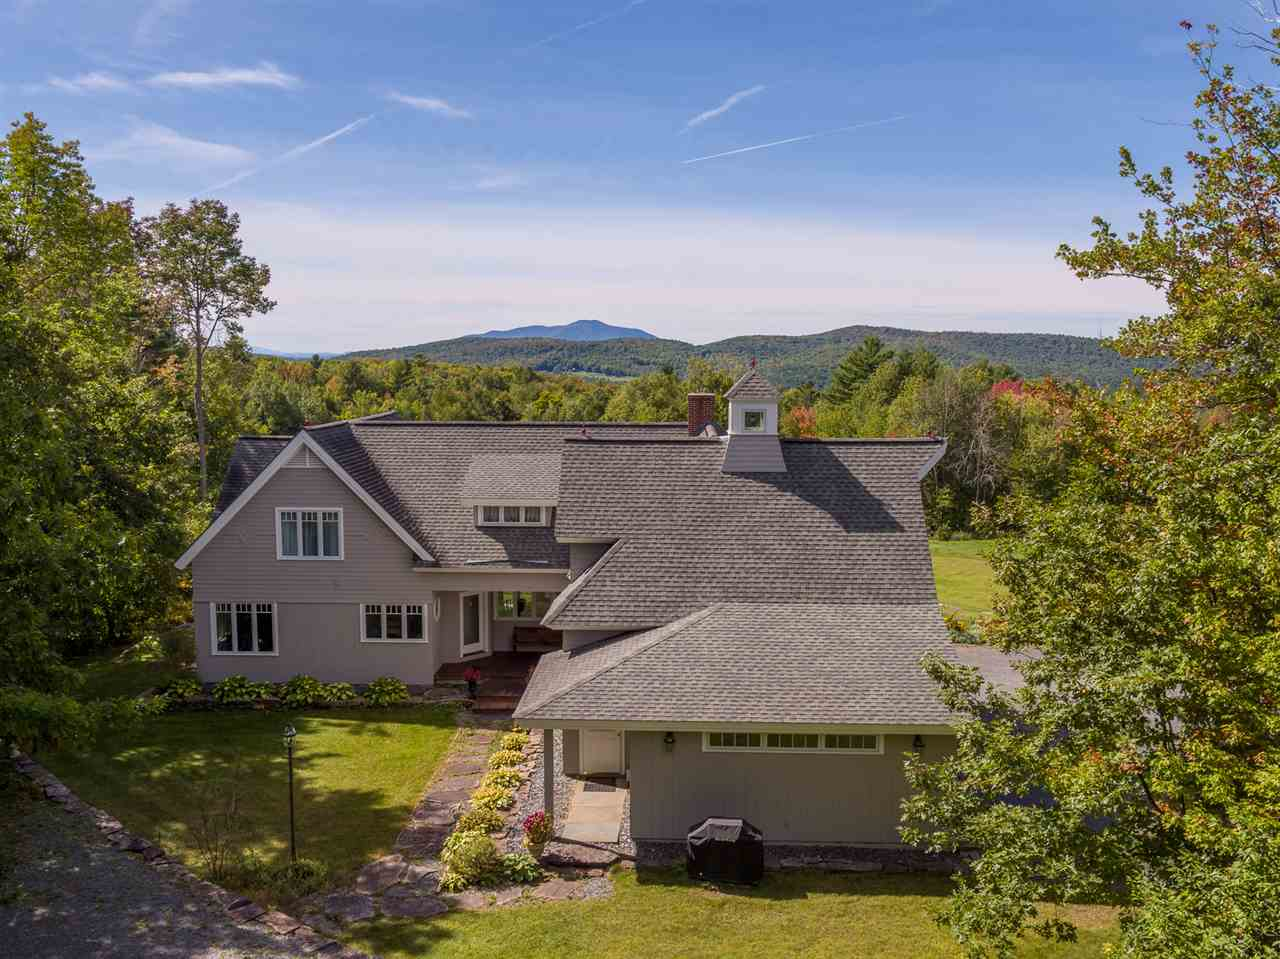 MLS 4707599: 401 Leavitt Hill Road, Cornish NH